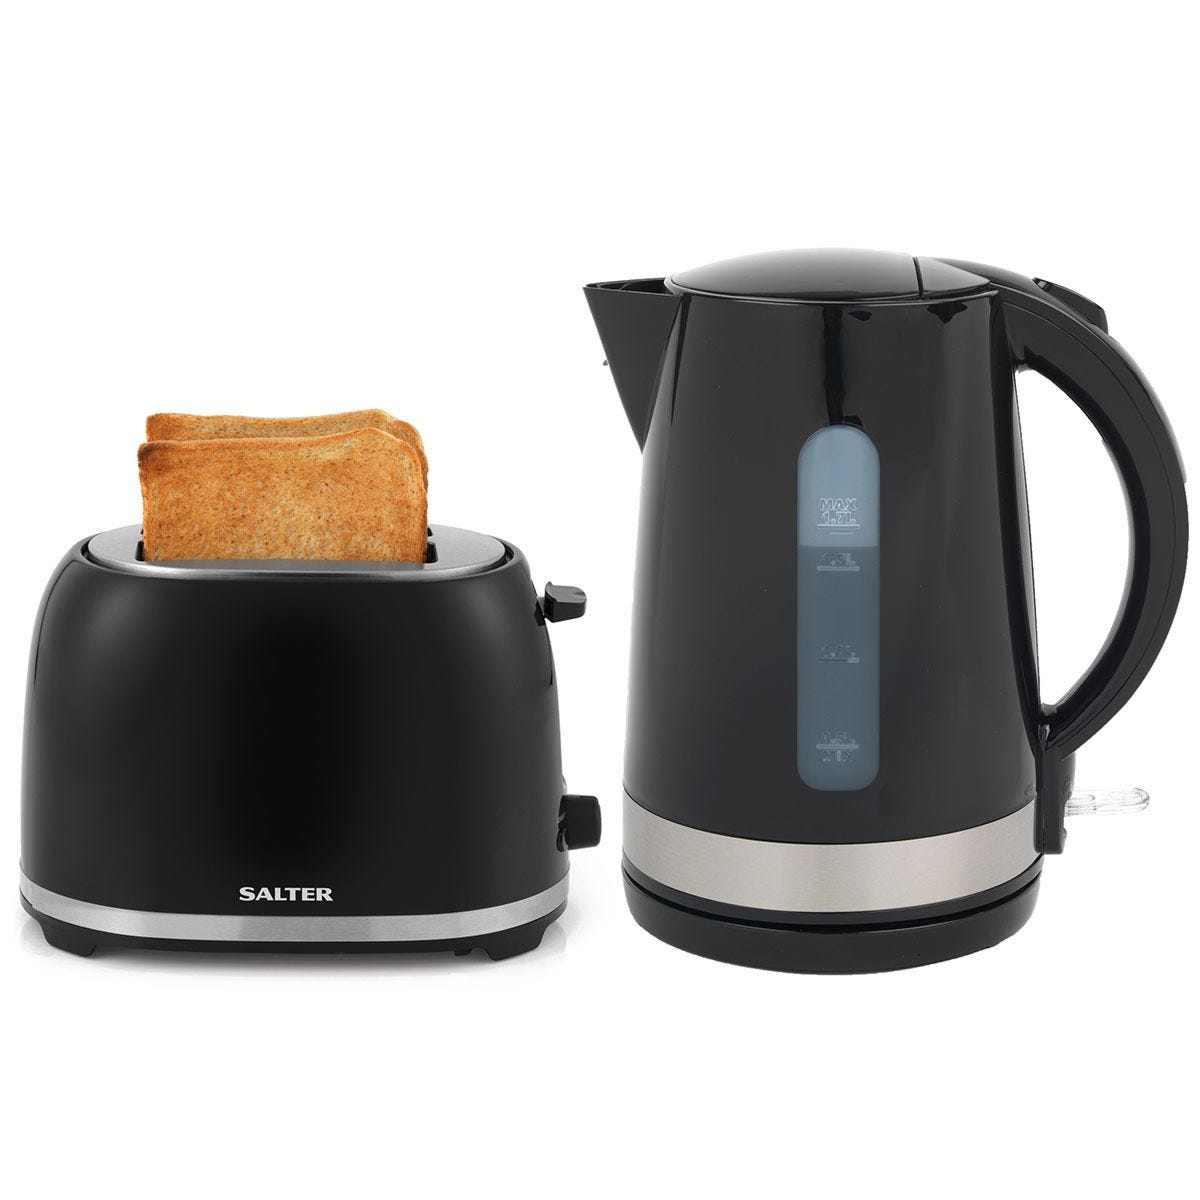 Salter Deco 3kw Kettle   Home   George